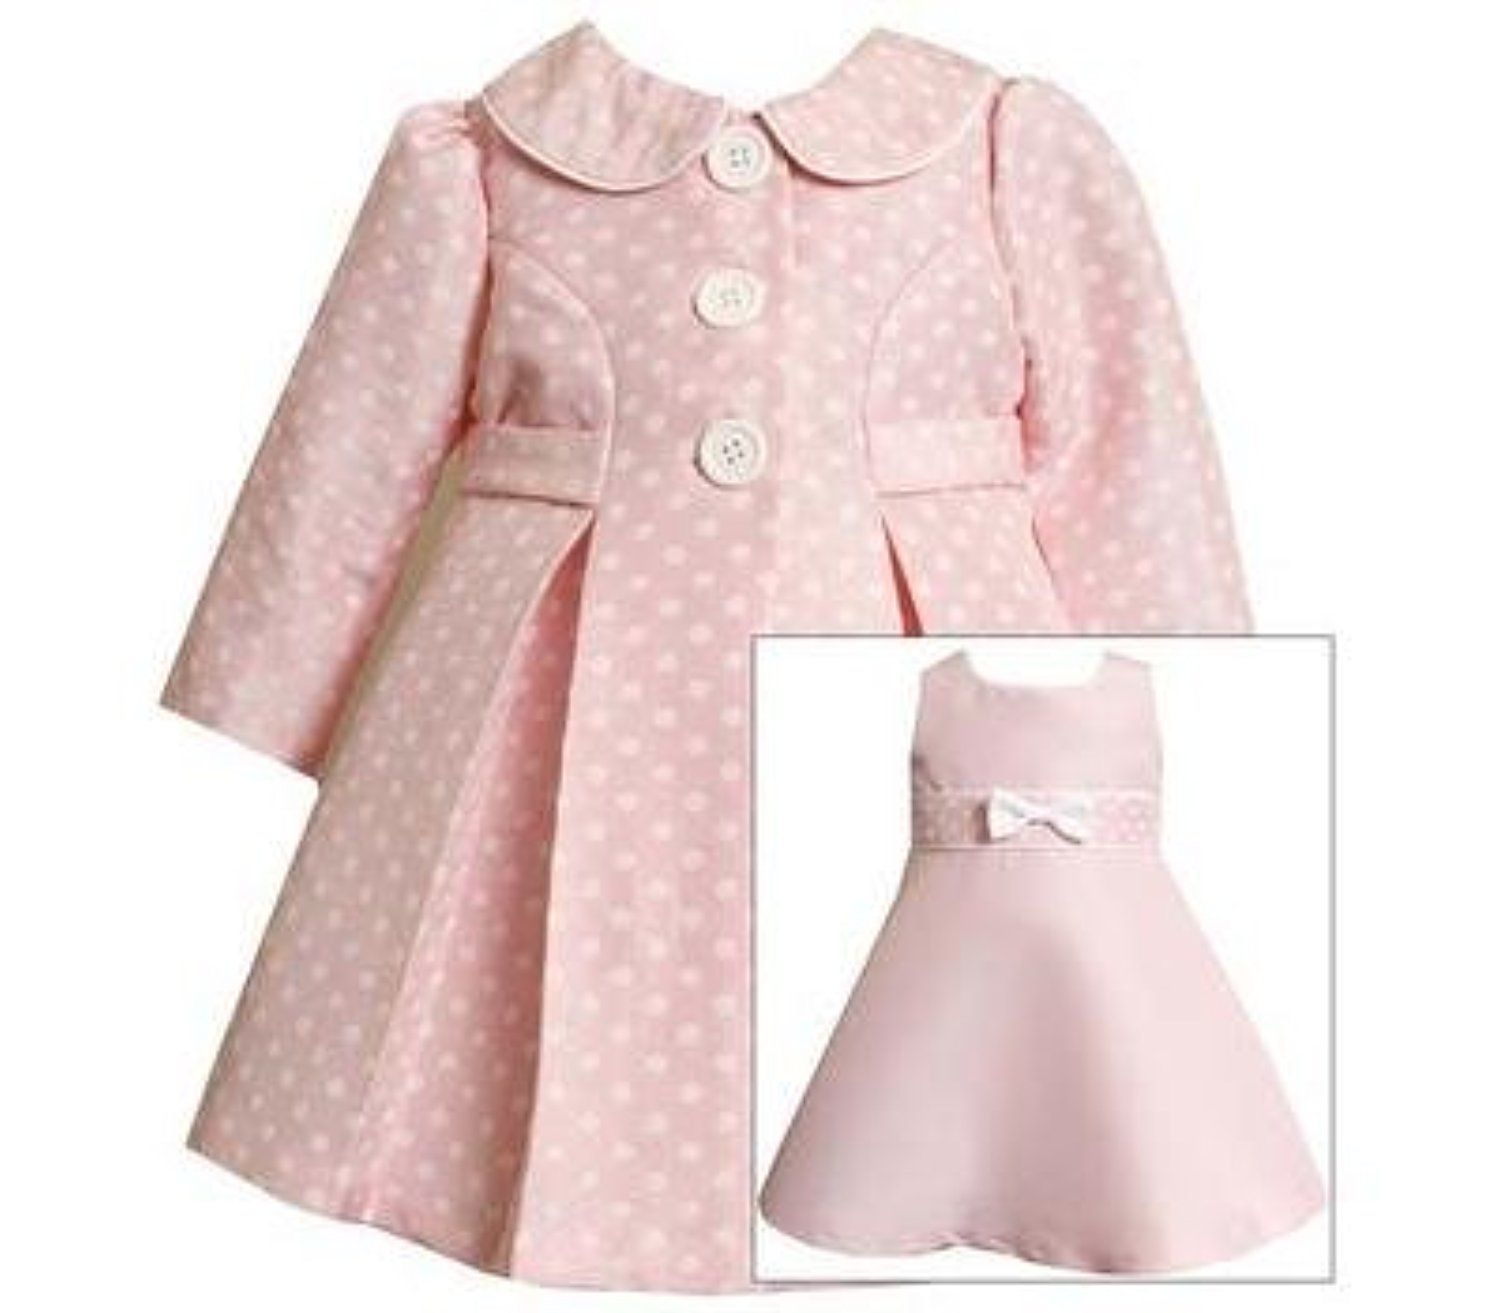 8ef3bd8a1 Bonnie Baby Girls Pink Jacquard Dot Coat & Dress Set , Pink , 24M ...